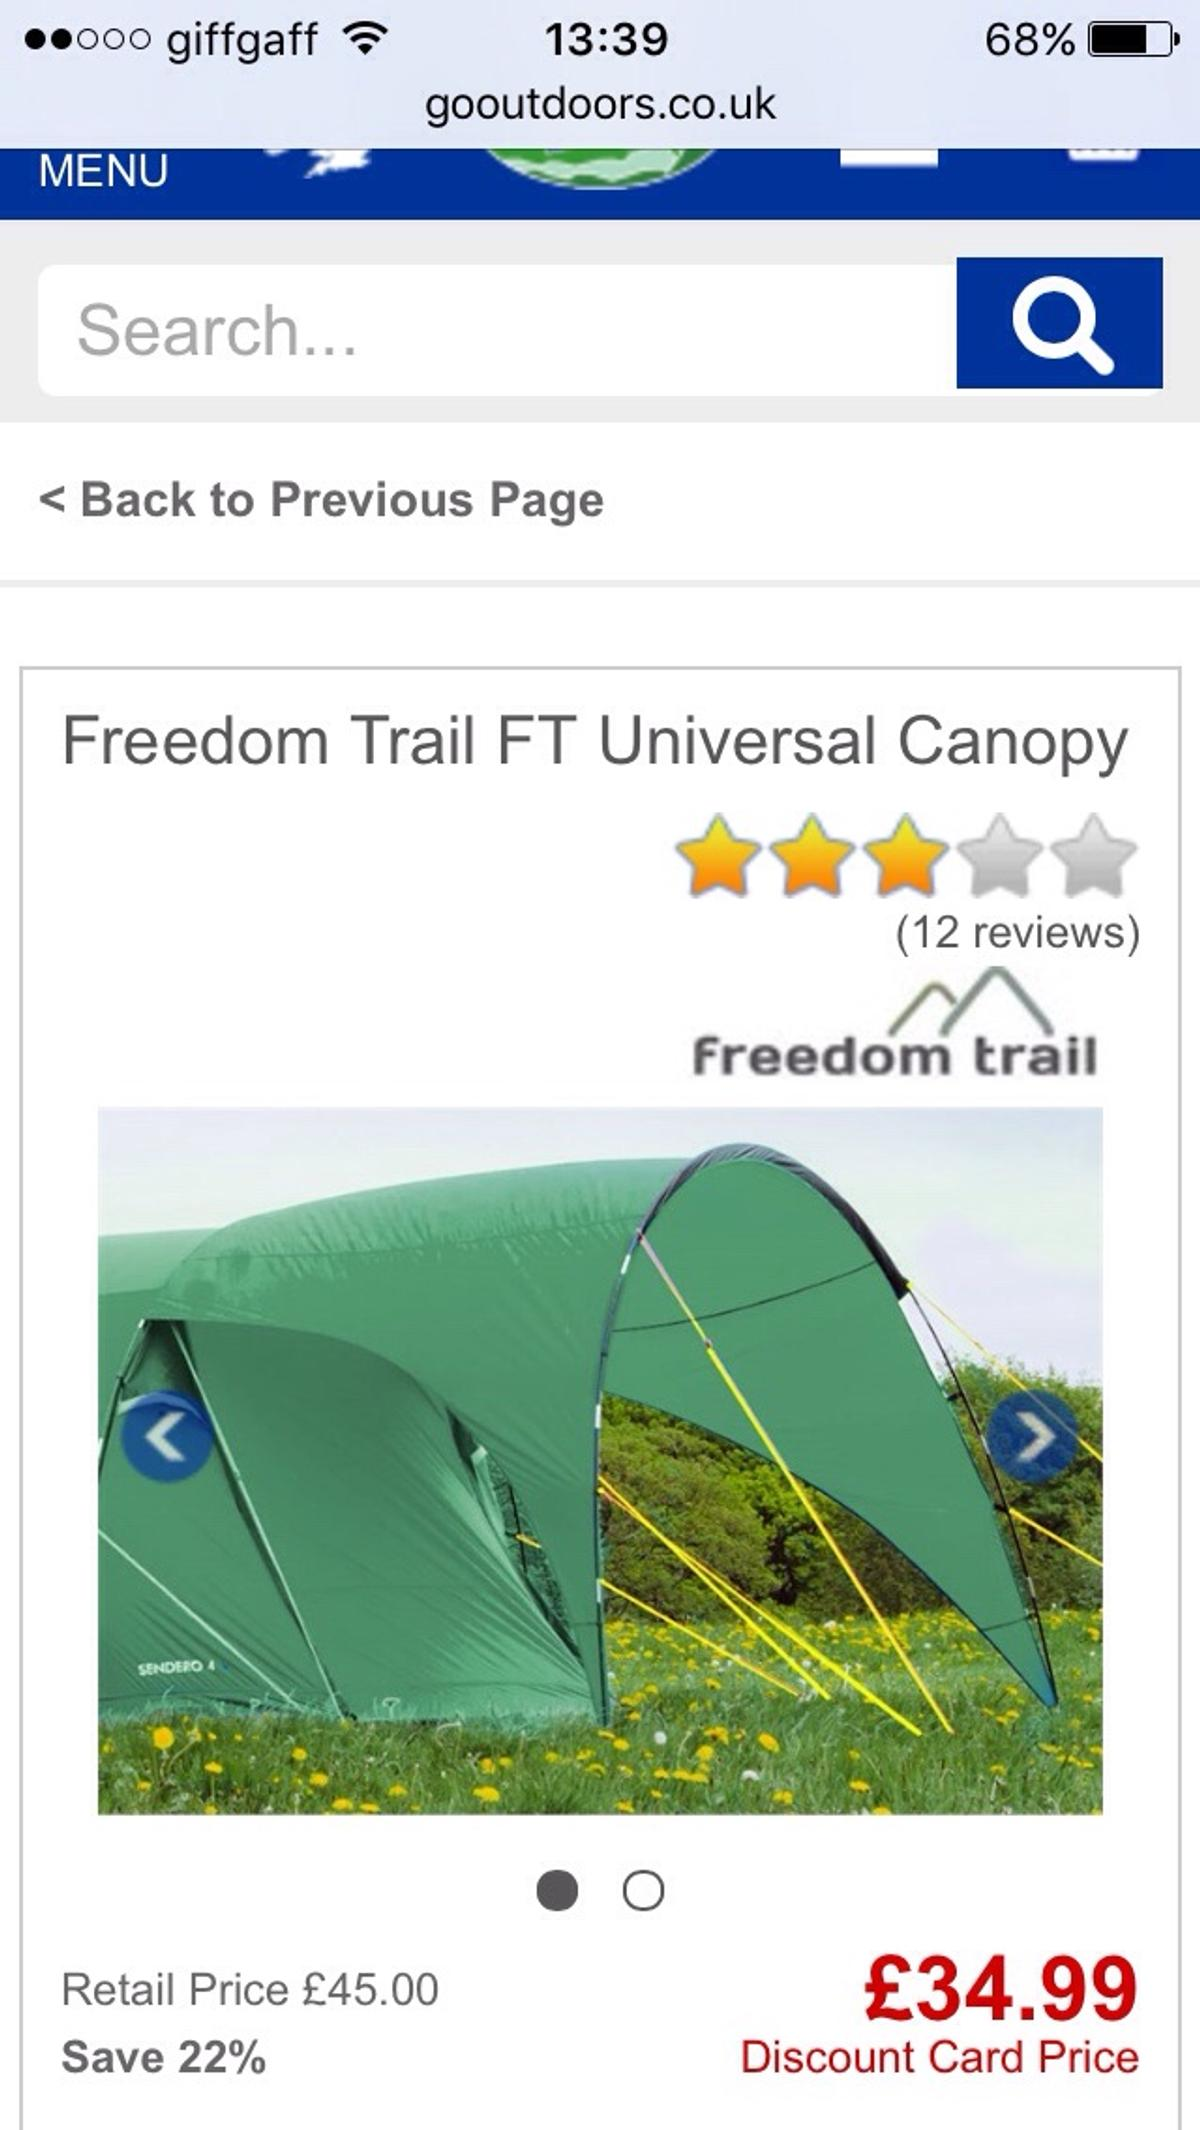 FT Universal Canopy | Freedom trail